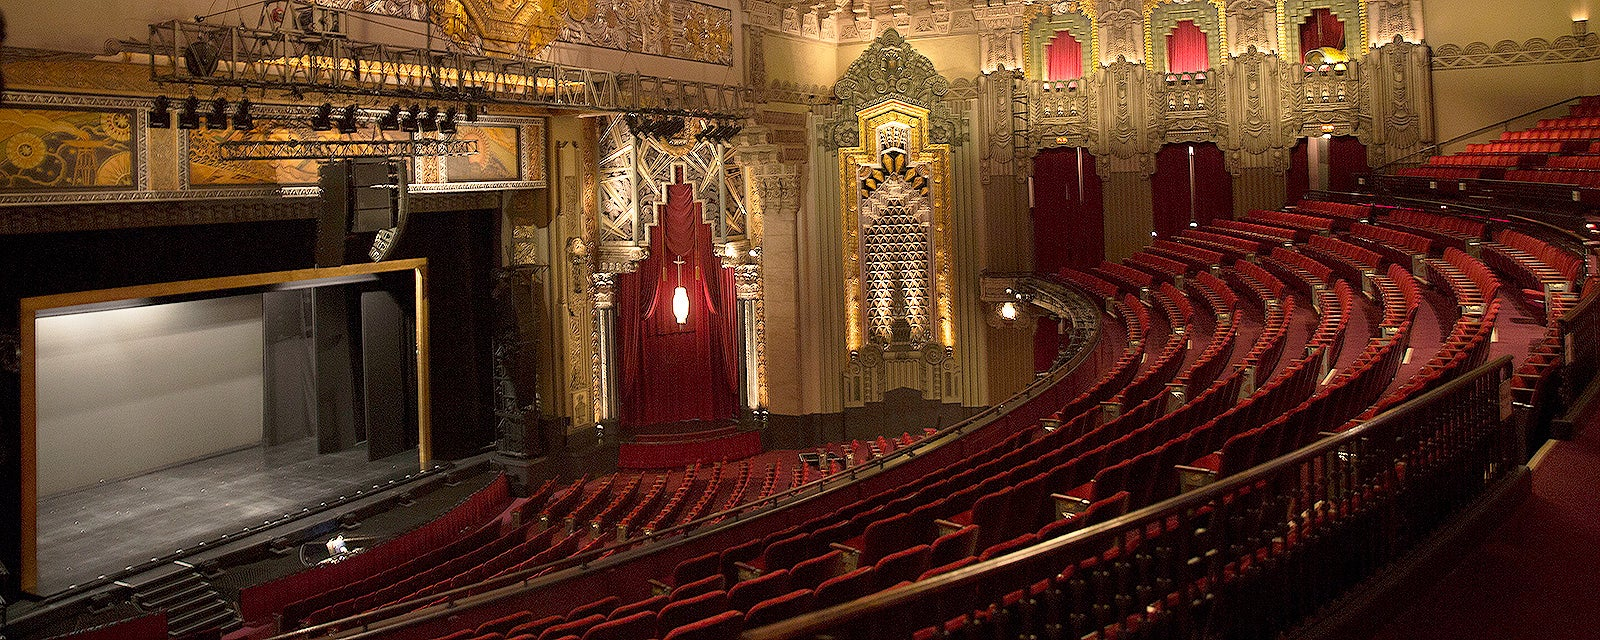 How To The Hollywood Pantages